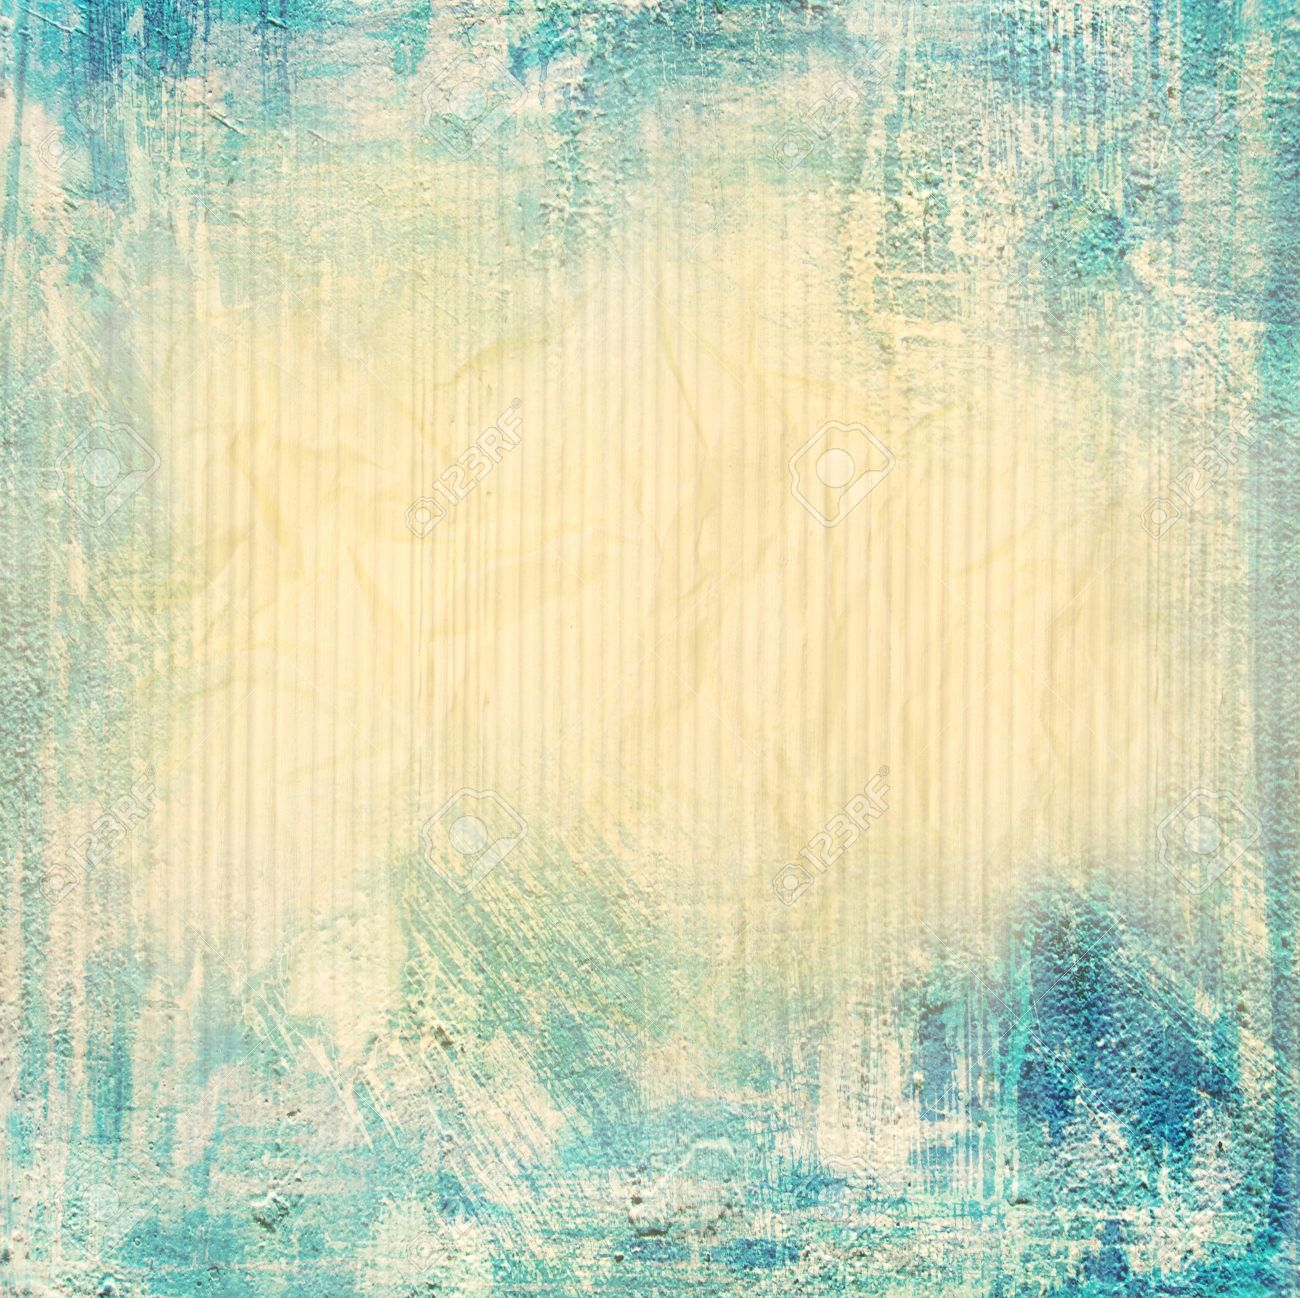 Designed Grunge Texture Paint Background For Vintage Wallpaper Old Paper And Art